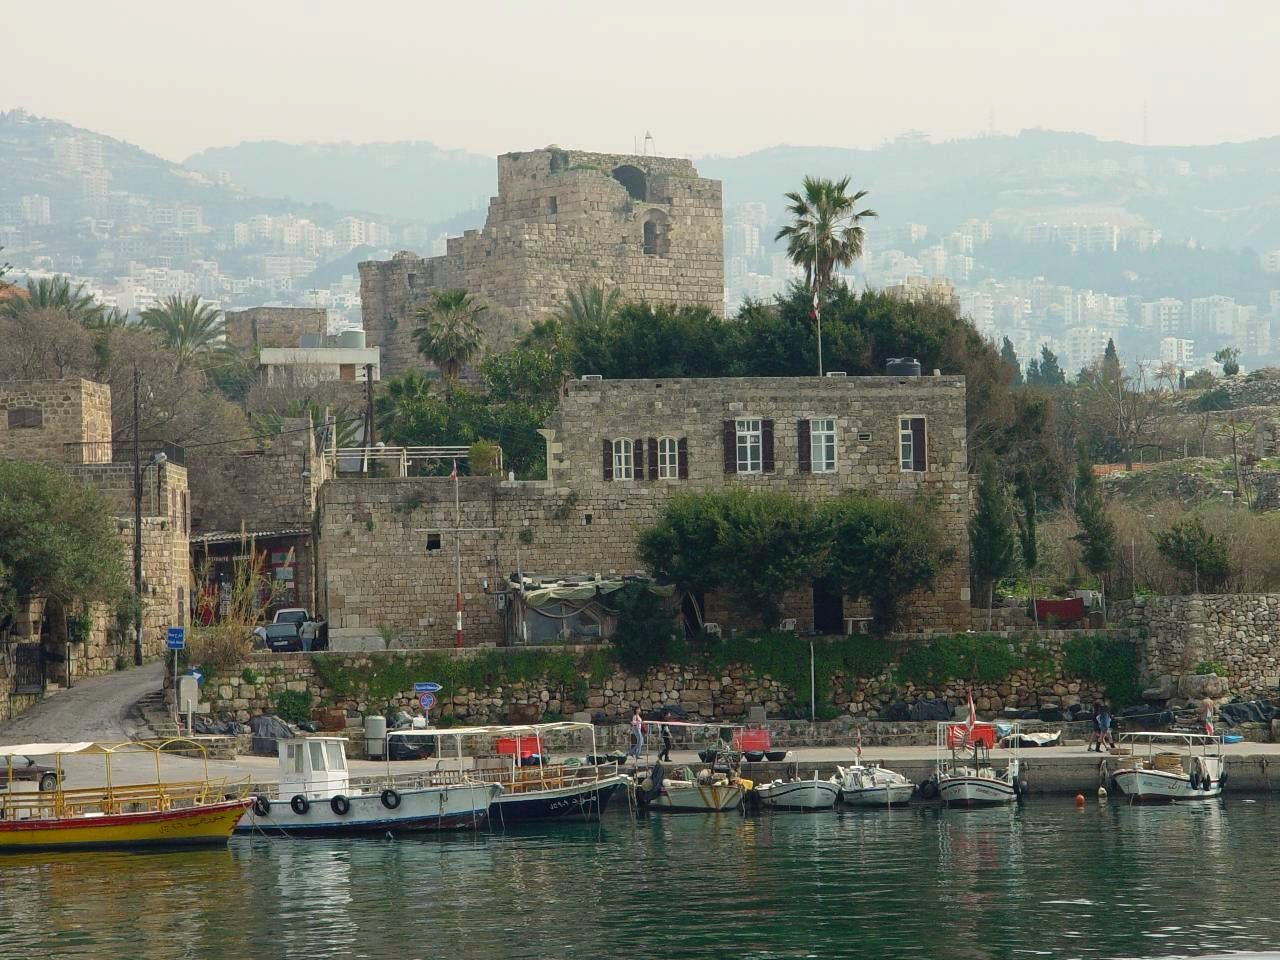 Byblos is a Mediterranean city located in Lebanon